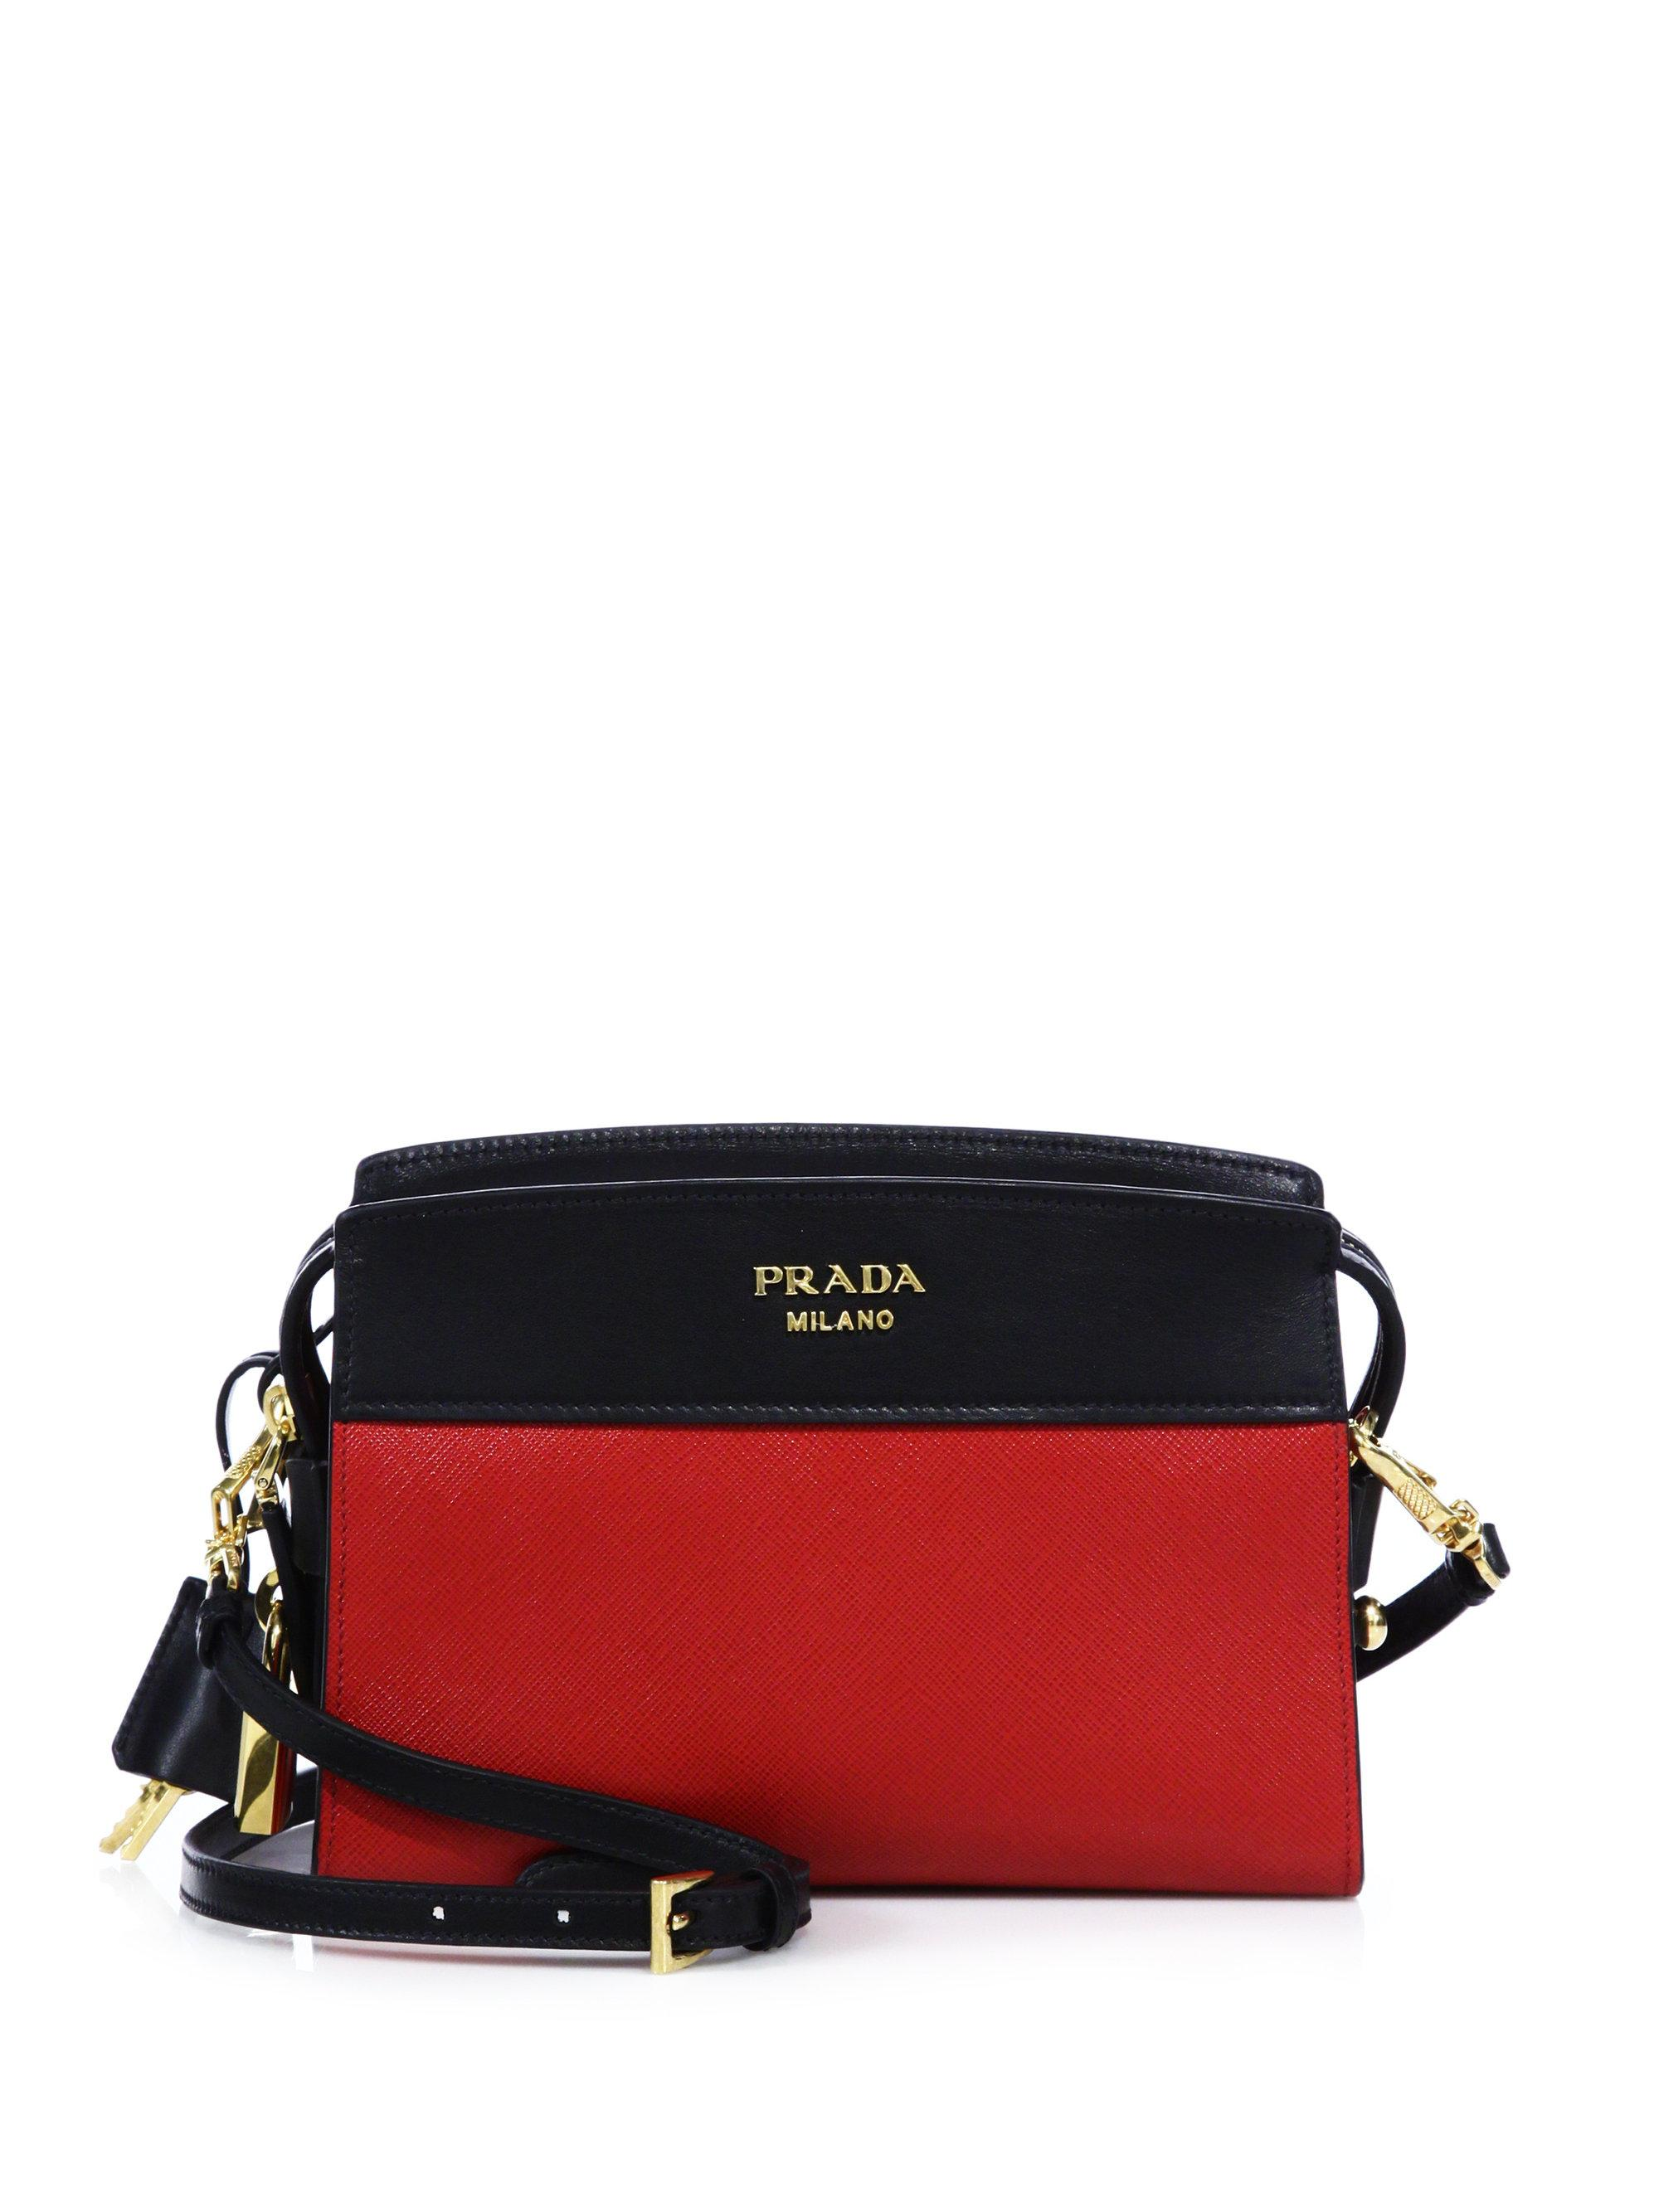 4196a5194490 ... cheap lyst prada esplanade leather shoulder bag in red 25121 4b965